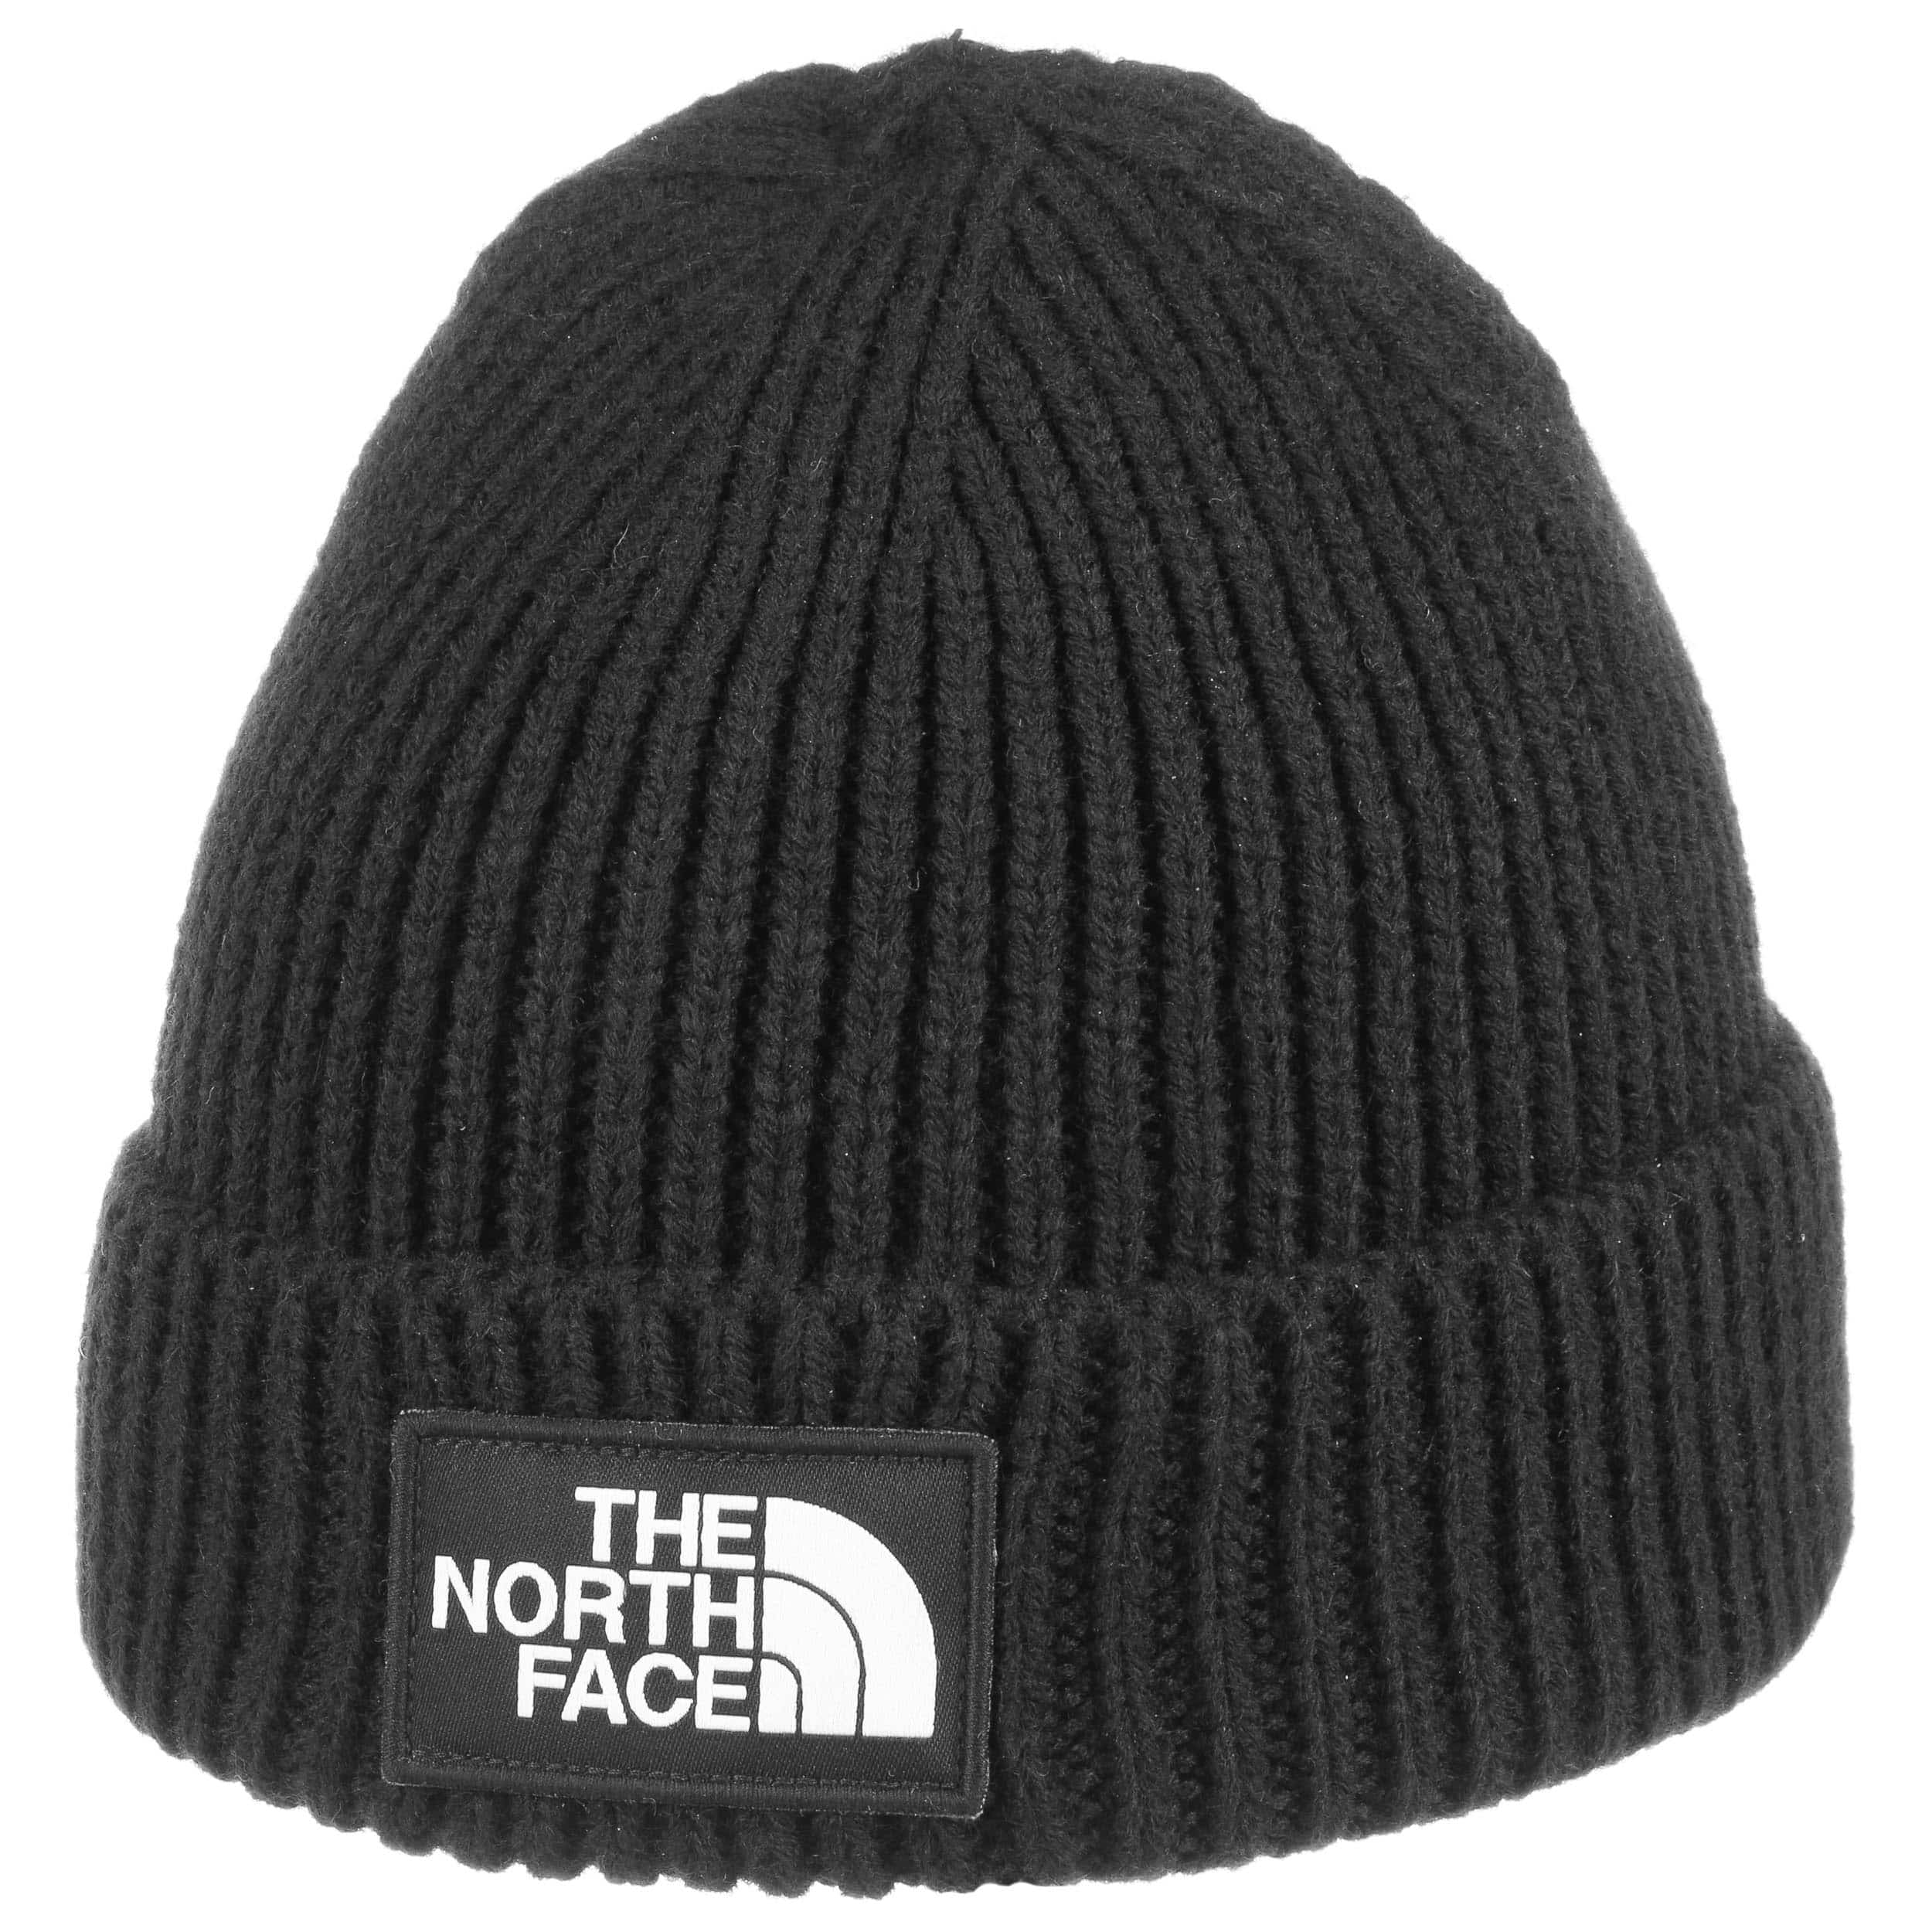 15c46d0885aba Gorro Beanie Logo Box by The North Face - Gorros - sombreroshop.es